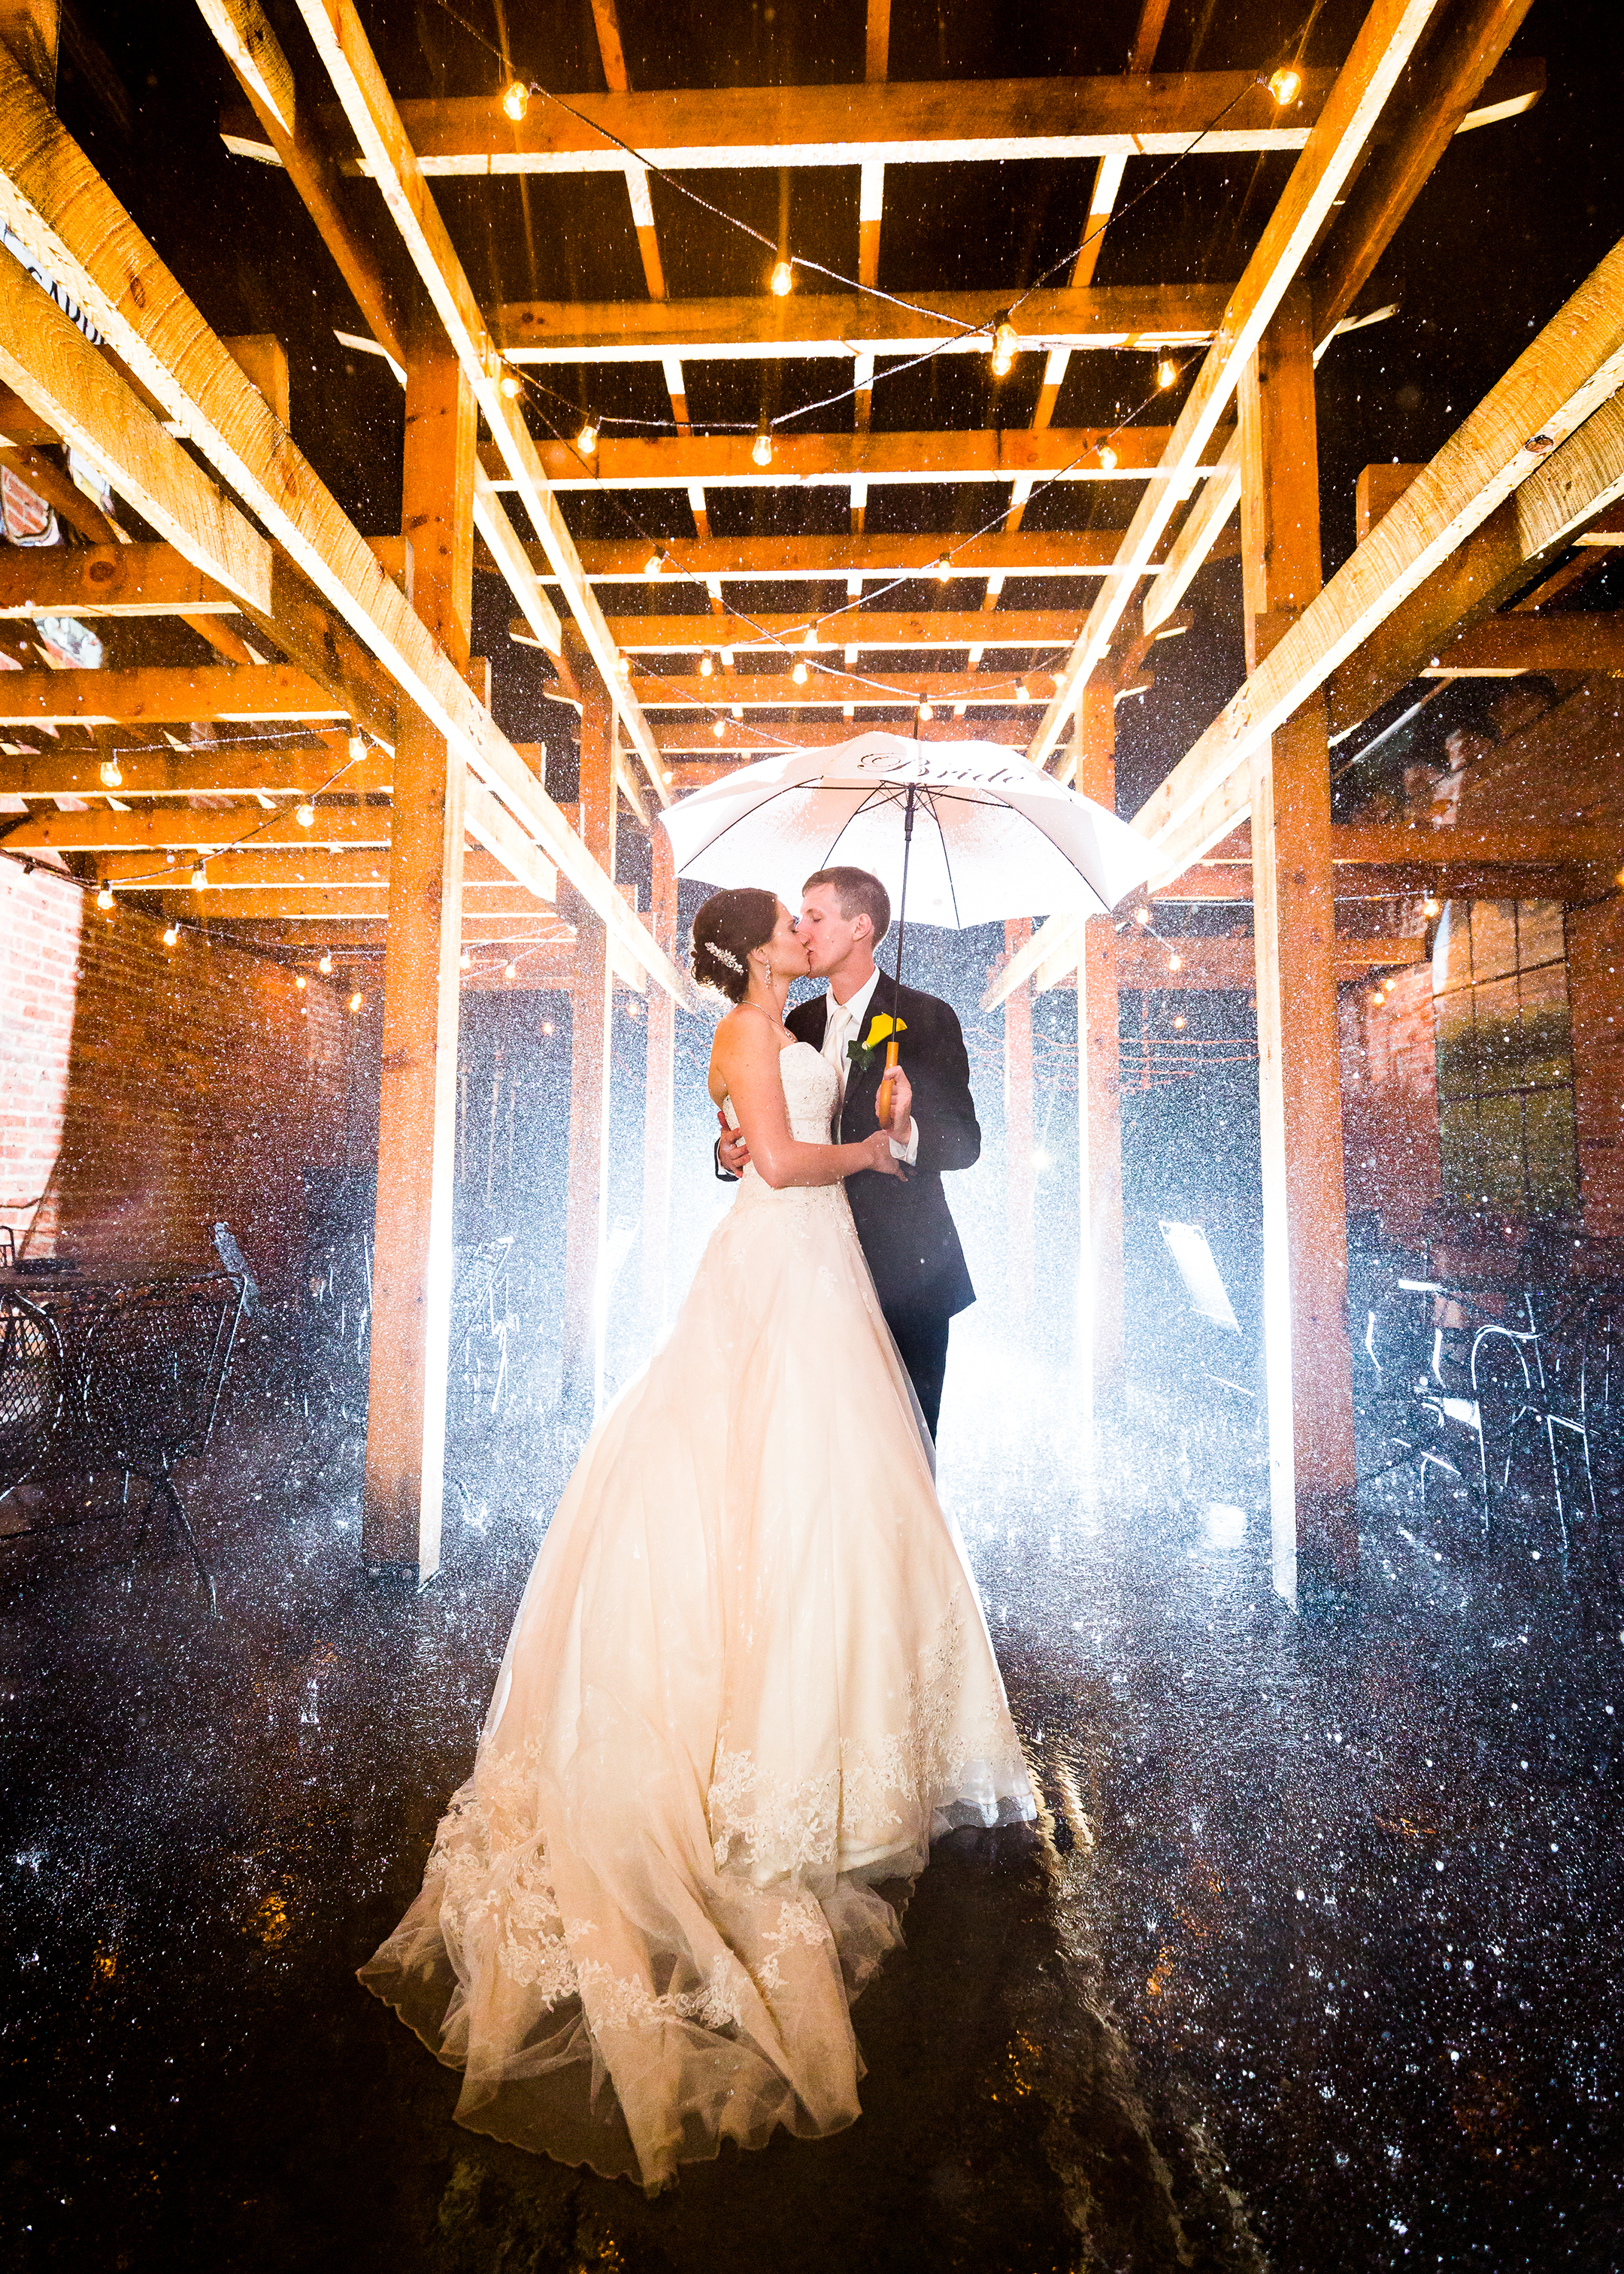 "Emily & Kyle - ""…he is absolutely dedicated to his work and I could not find any better words to describe him that devoted, driven, and the best damn photographer that I have ever met!""Full Review:""Eric did such an amazing job at our wedding a couple weeks ago, and even the process leading up to the big day! The night before the wedding he called me to let me know that although the weather forecast looked rainy, not to let that bother me because he could capture some amazing rain shots if necessary- and if you saw that great shot from two weeks ago in the rain- he was absolutely right! Eric went above and beyond to ensure that all of my guests and wedding party members were captured with photographs, took so many action shots dancing, romantic shots on the rooftop of Browns as well as in the rain (getting soaked in the process)...he is absolutely dedicated to his work and I could not find any better words to describe him that devoted, driven, and the best damn photographer that I have ever met! Eric has made this entire process enjoyable through creating timelines, being flexible, and even coming to the bridal salon to capture"